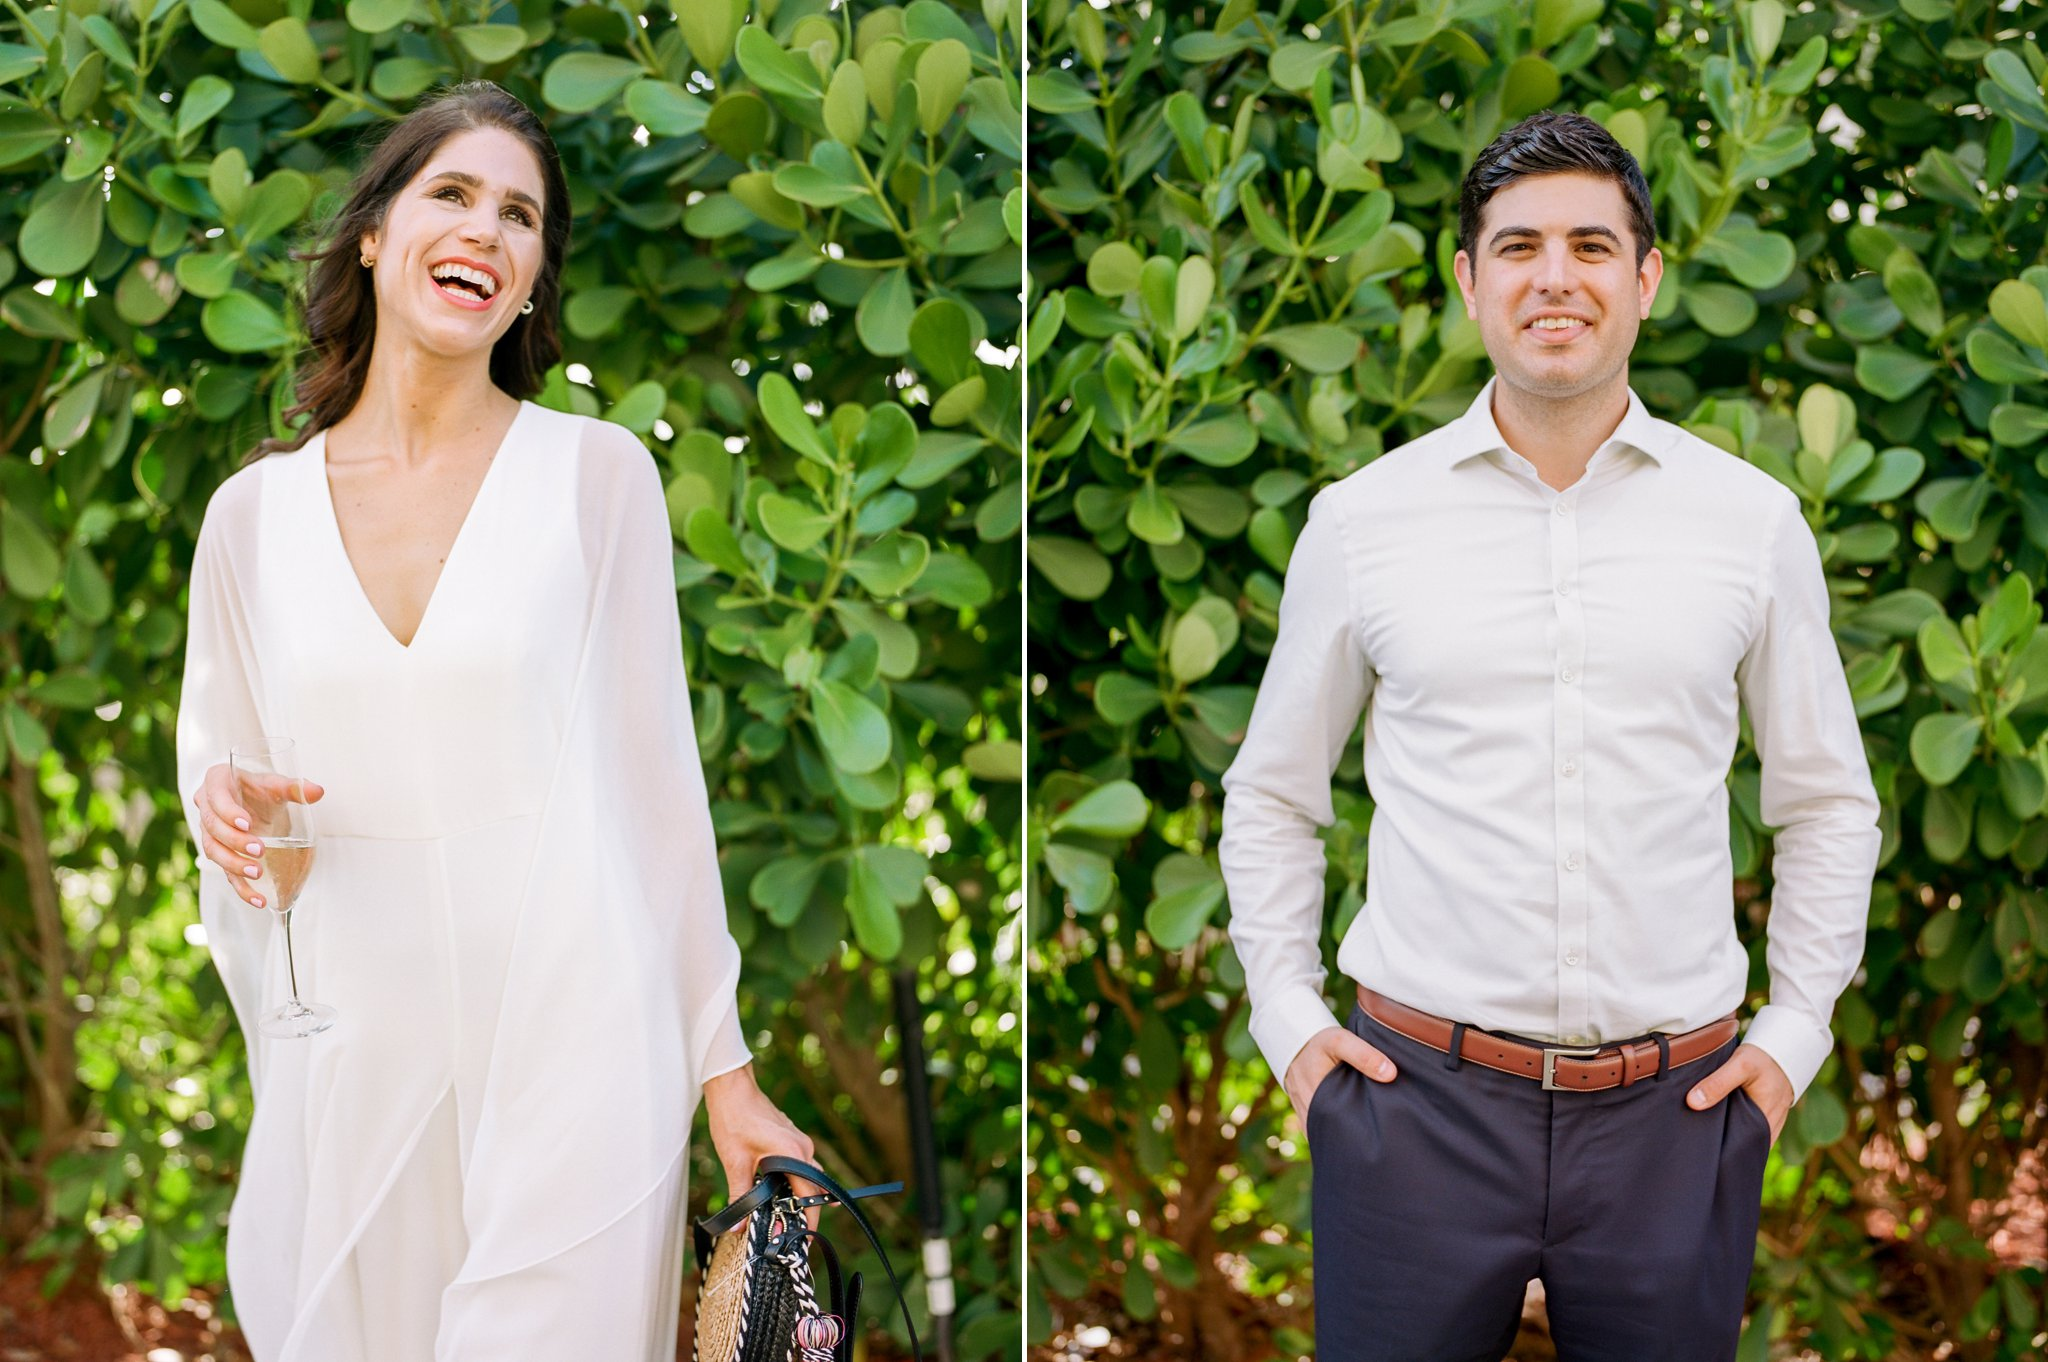 jw marriott marco island engagement session marco island wedding photographer shannon griffin photography_0011.jpg